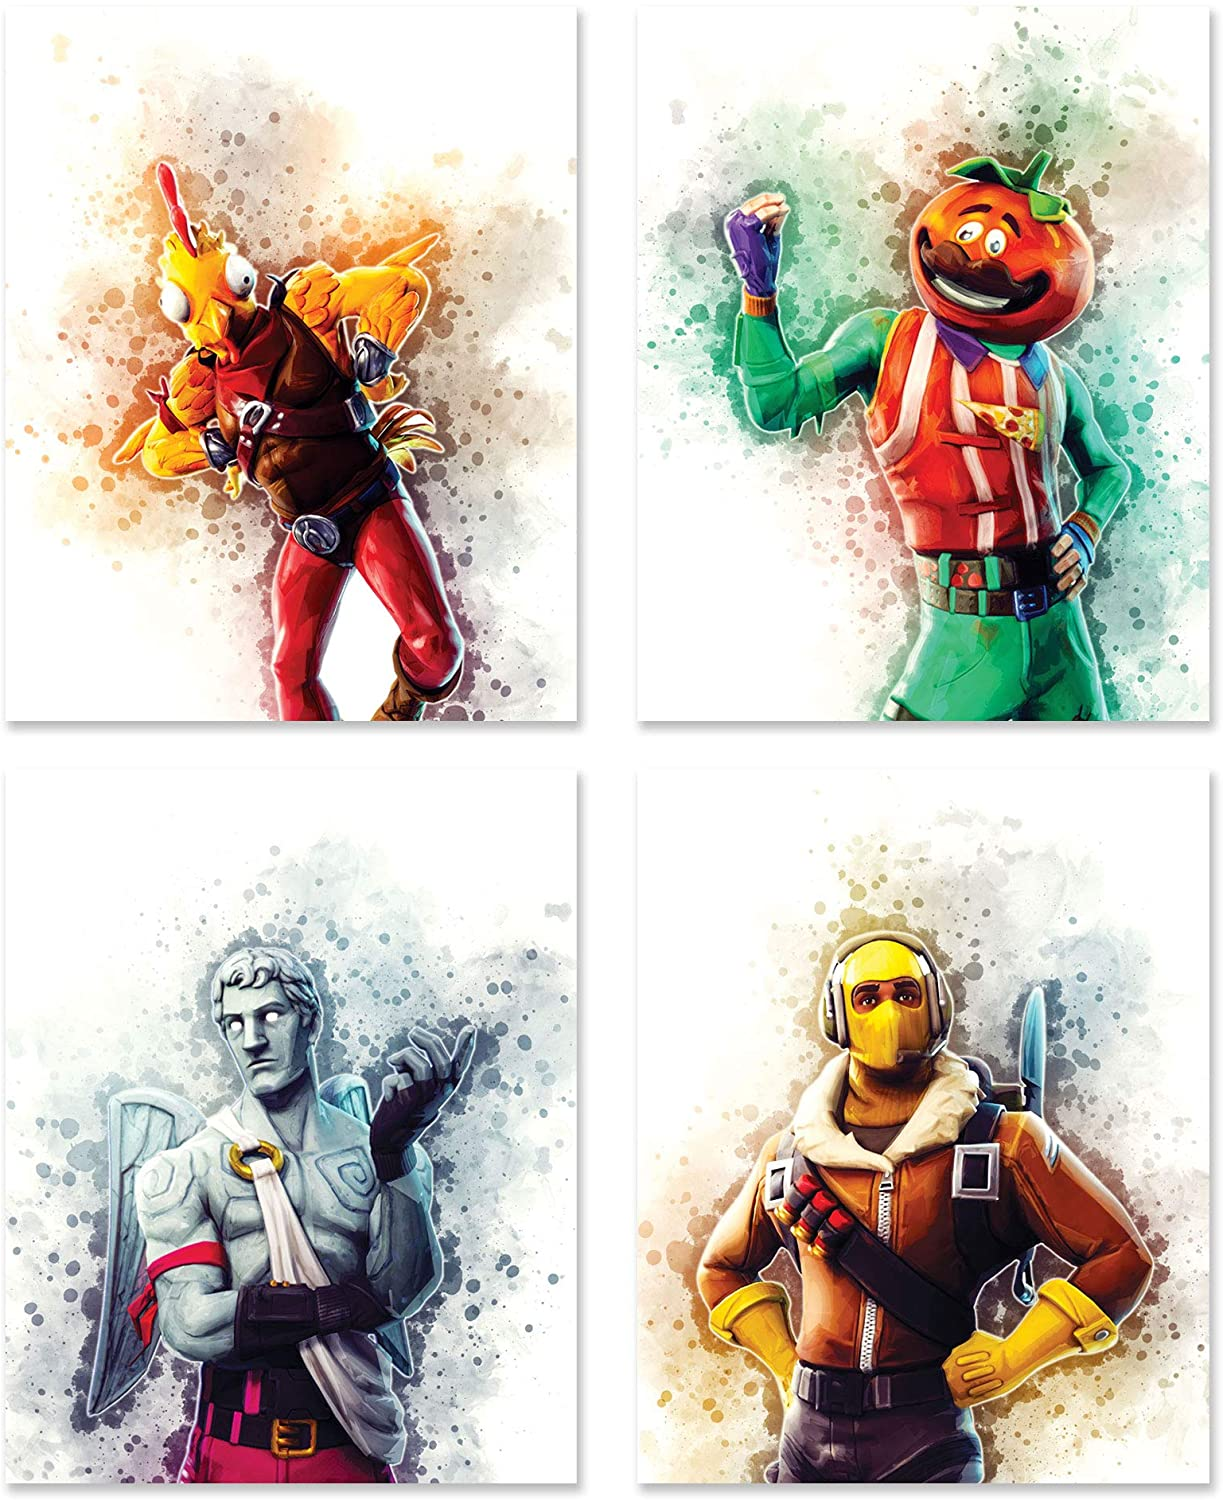 Battle Royale Video Game Decor | Set of Four (8 inches x 10 inches) Posters and Prints | Wall Art Gifts | Tomato, Chicken, Ranger, Raptor | Fort | Set 5